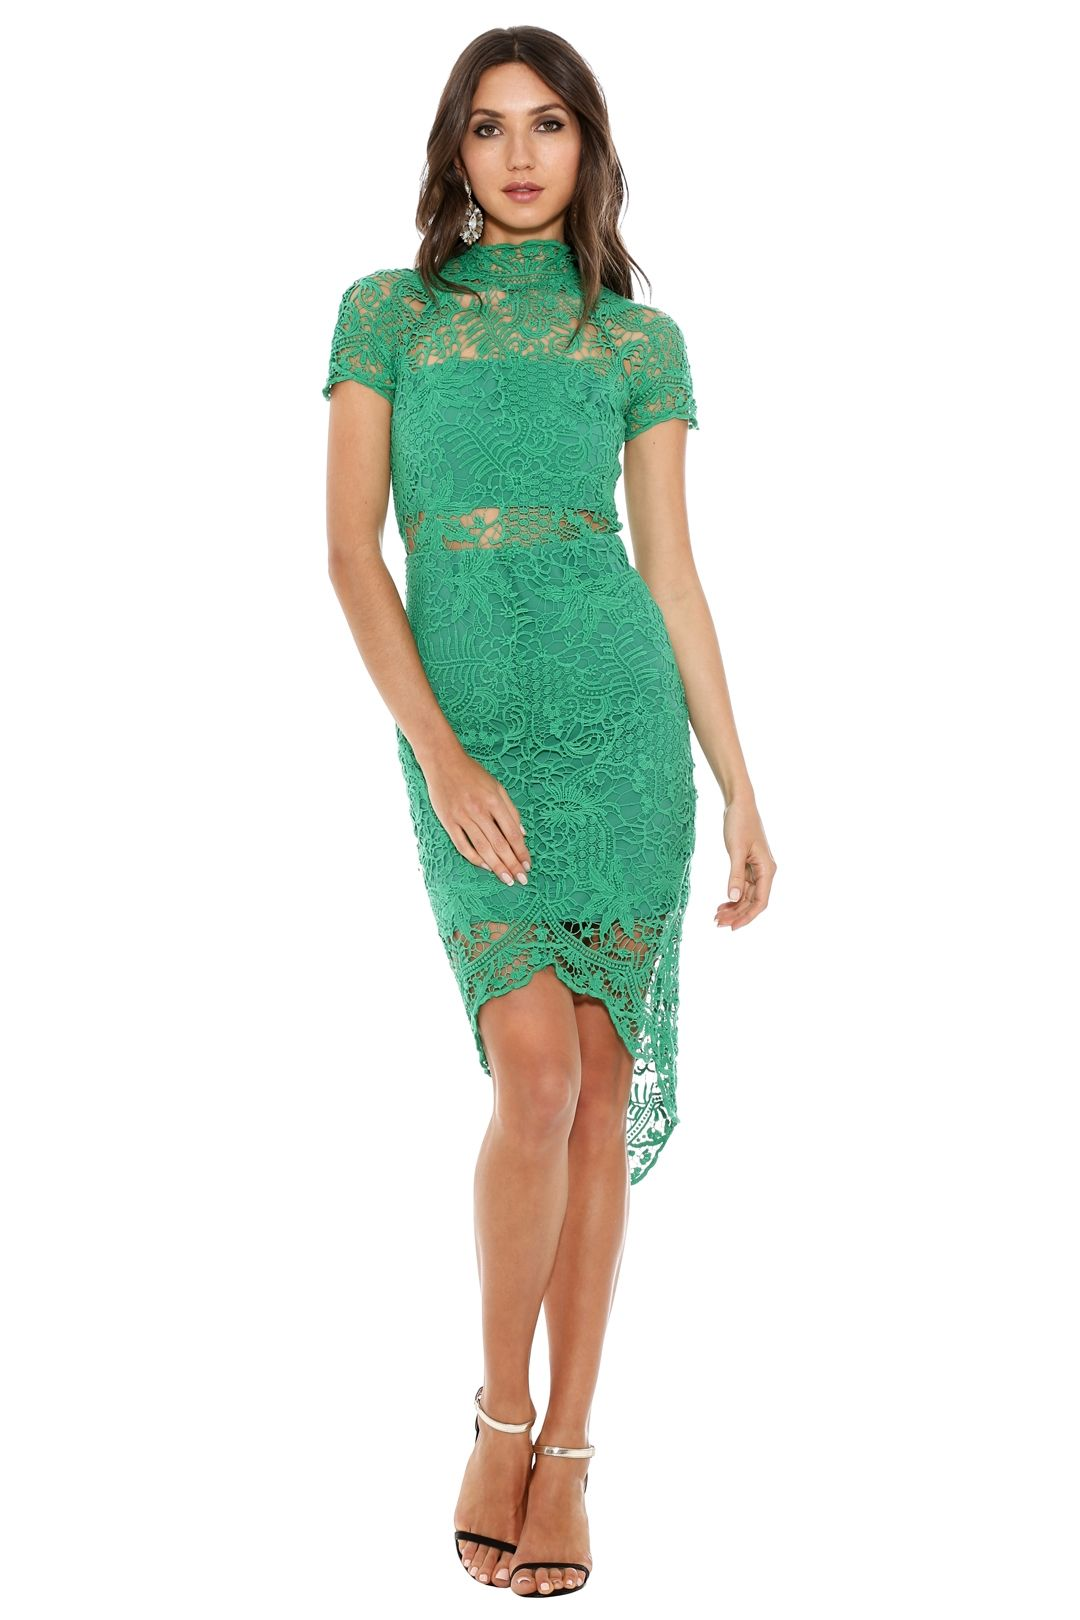 Thurley - Bed of Roses Lace Dress - Green - Front